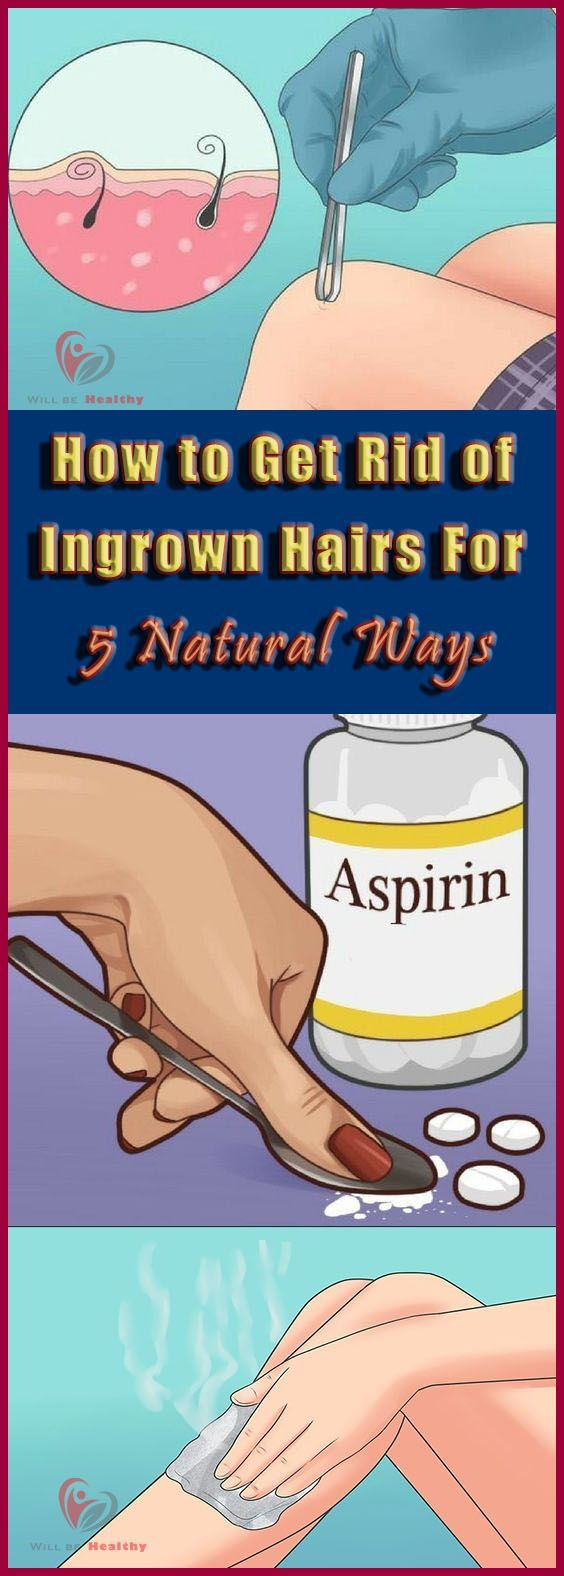 How to Get Rid of Ingrown Hairs for 5 Natural Ways #IngrownHairRemedies